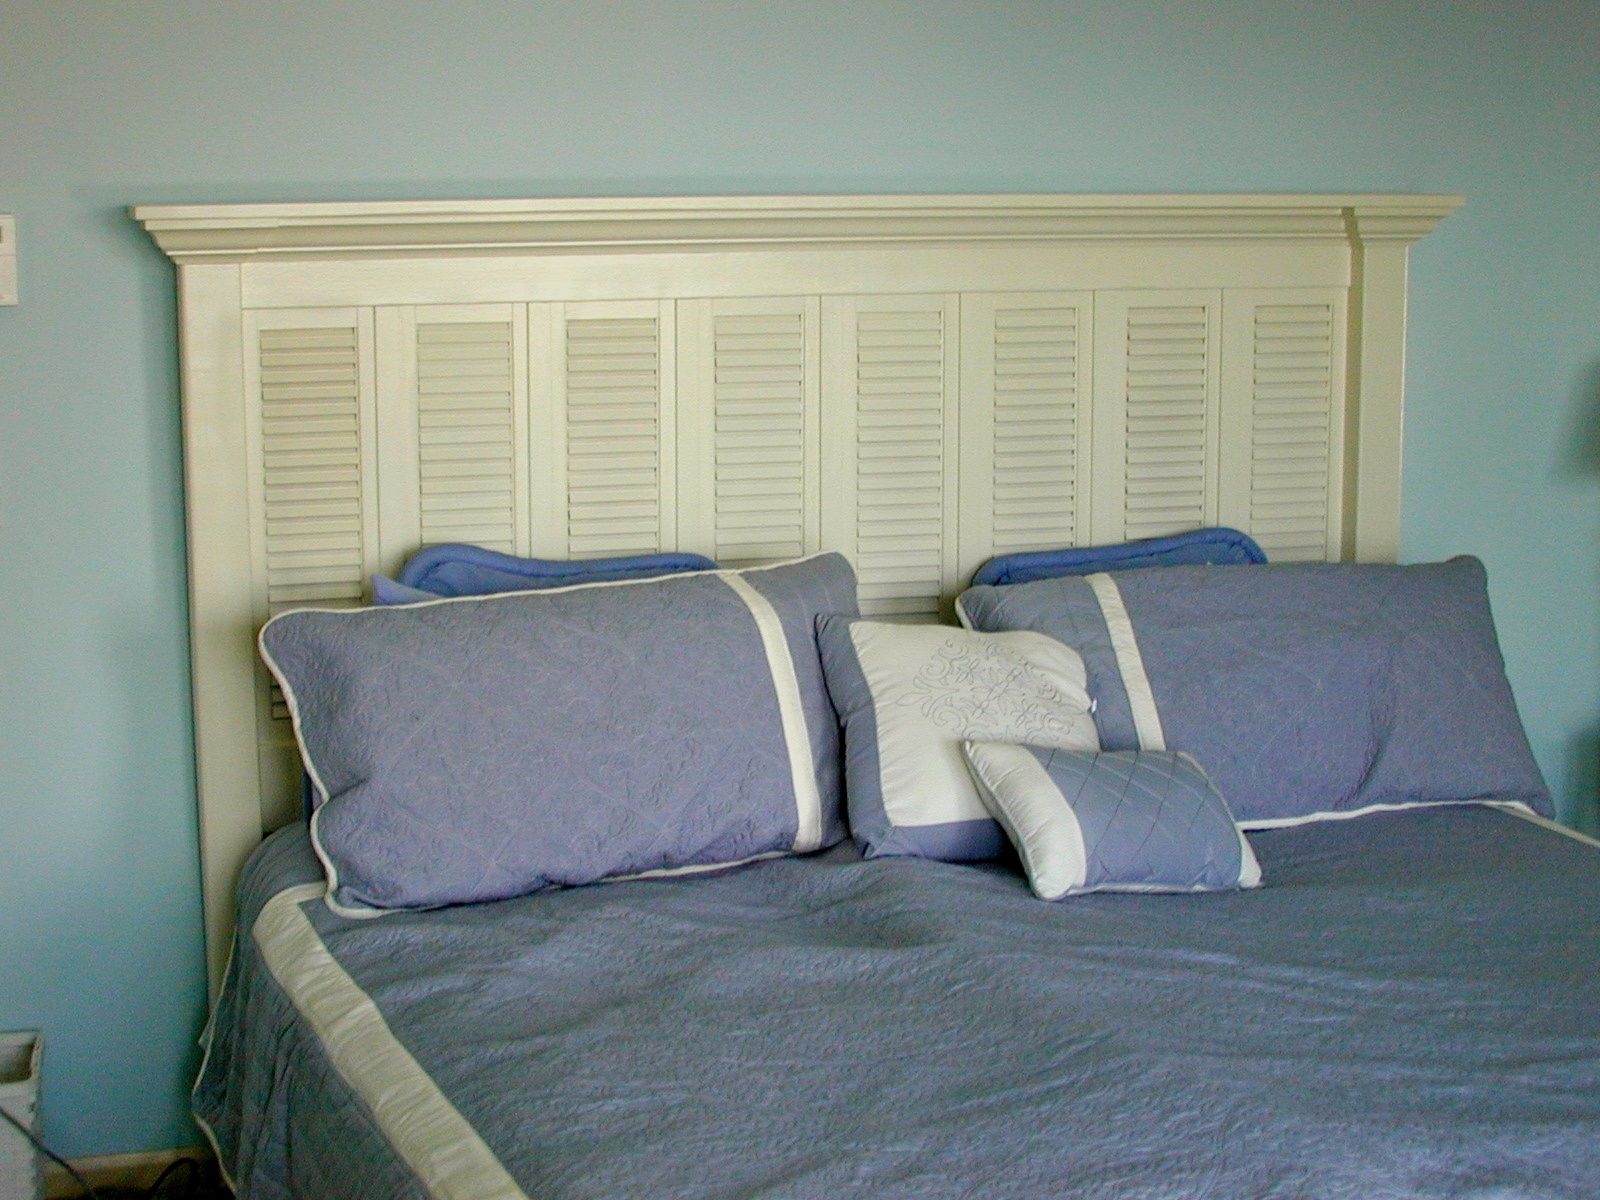 Custom king size headboard built from old window shutters for Unique king headboards